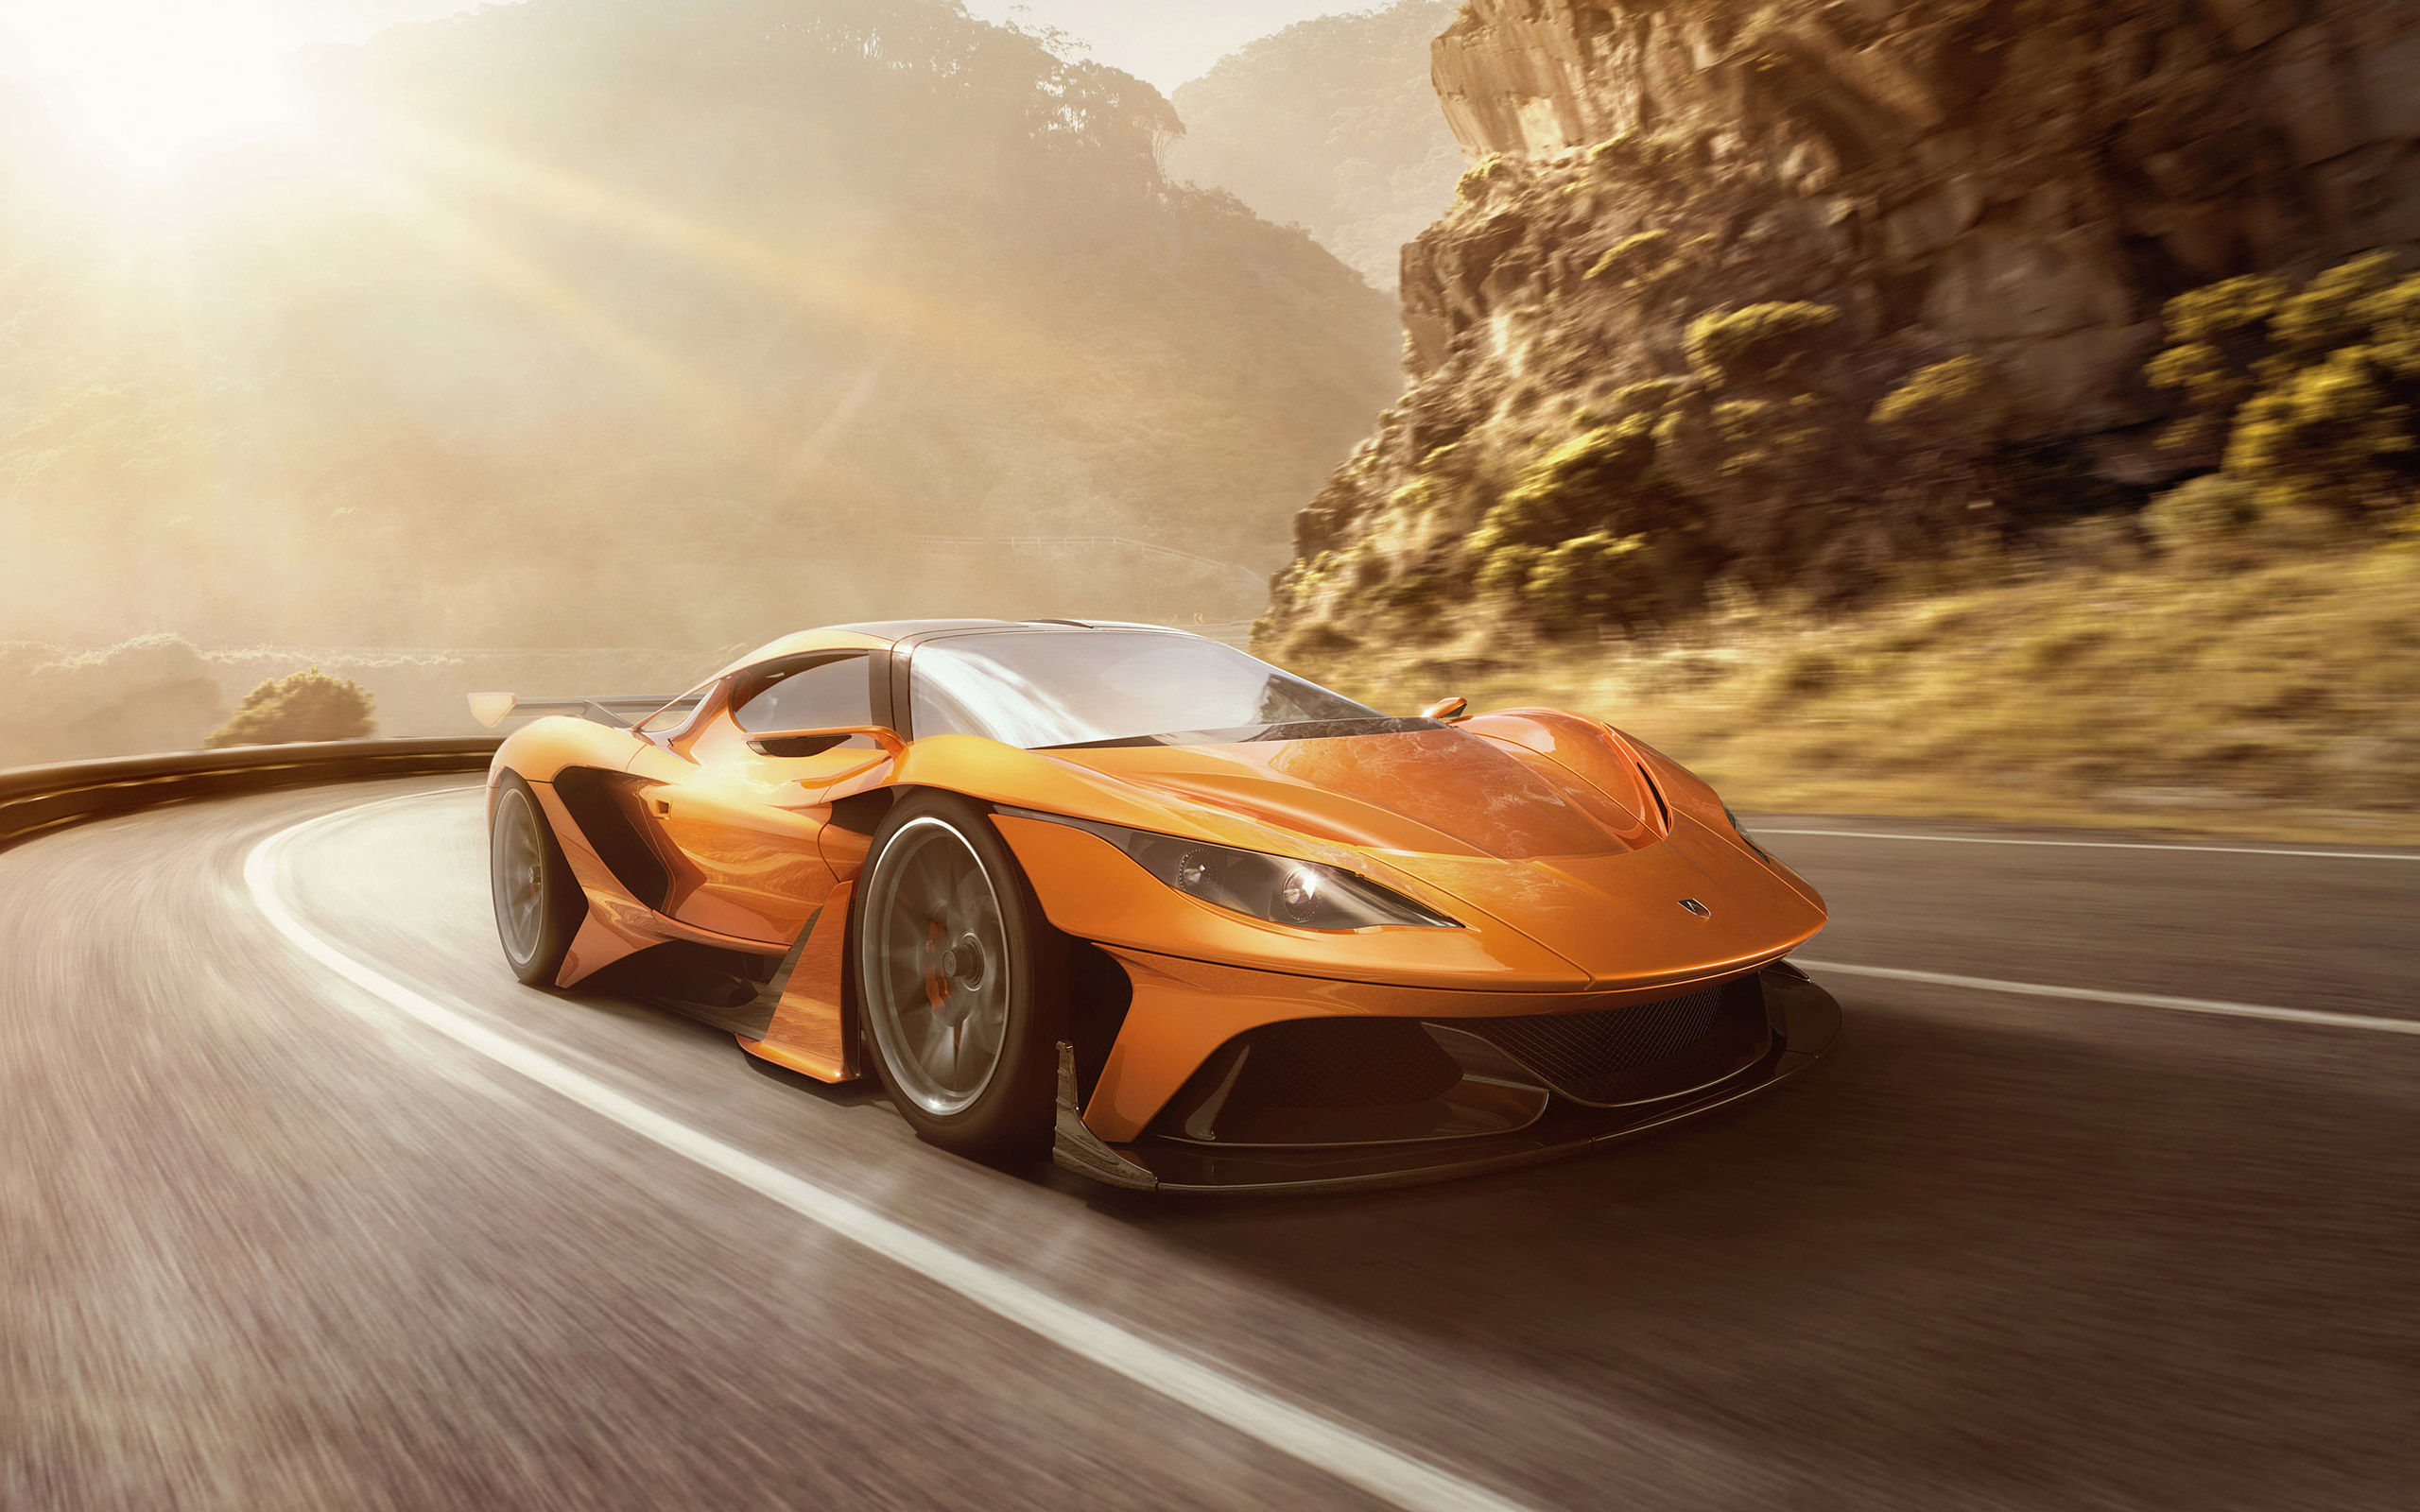 Apollo Arrow Concept Car 2016 Wallpapers - 2560x1600 - 637325